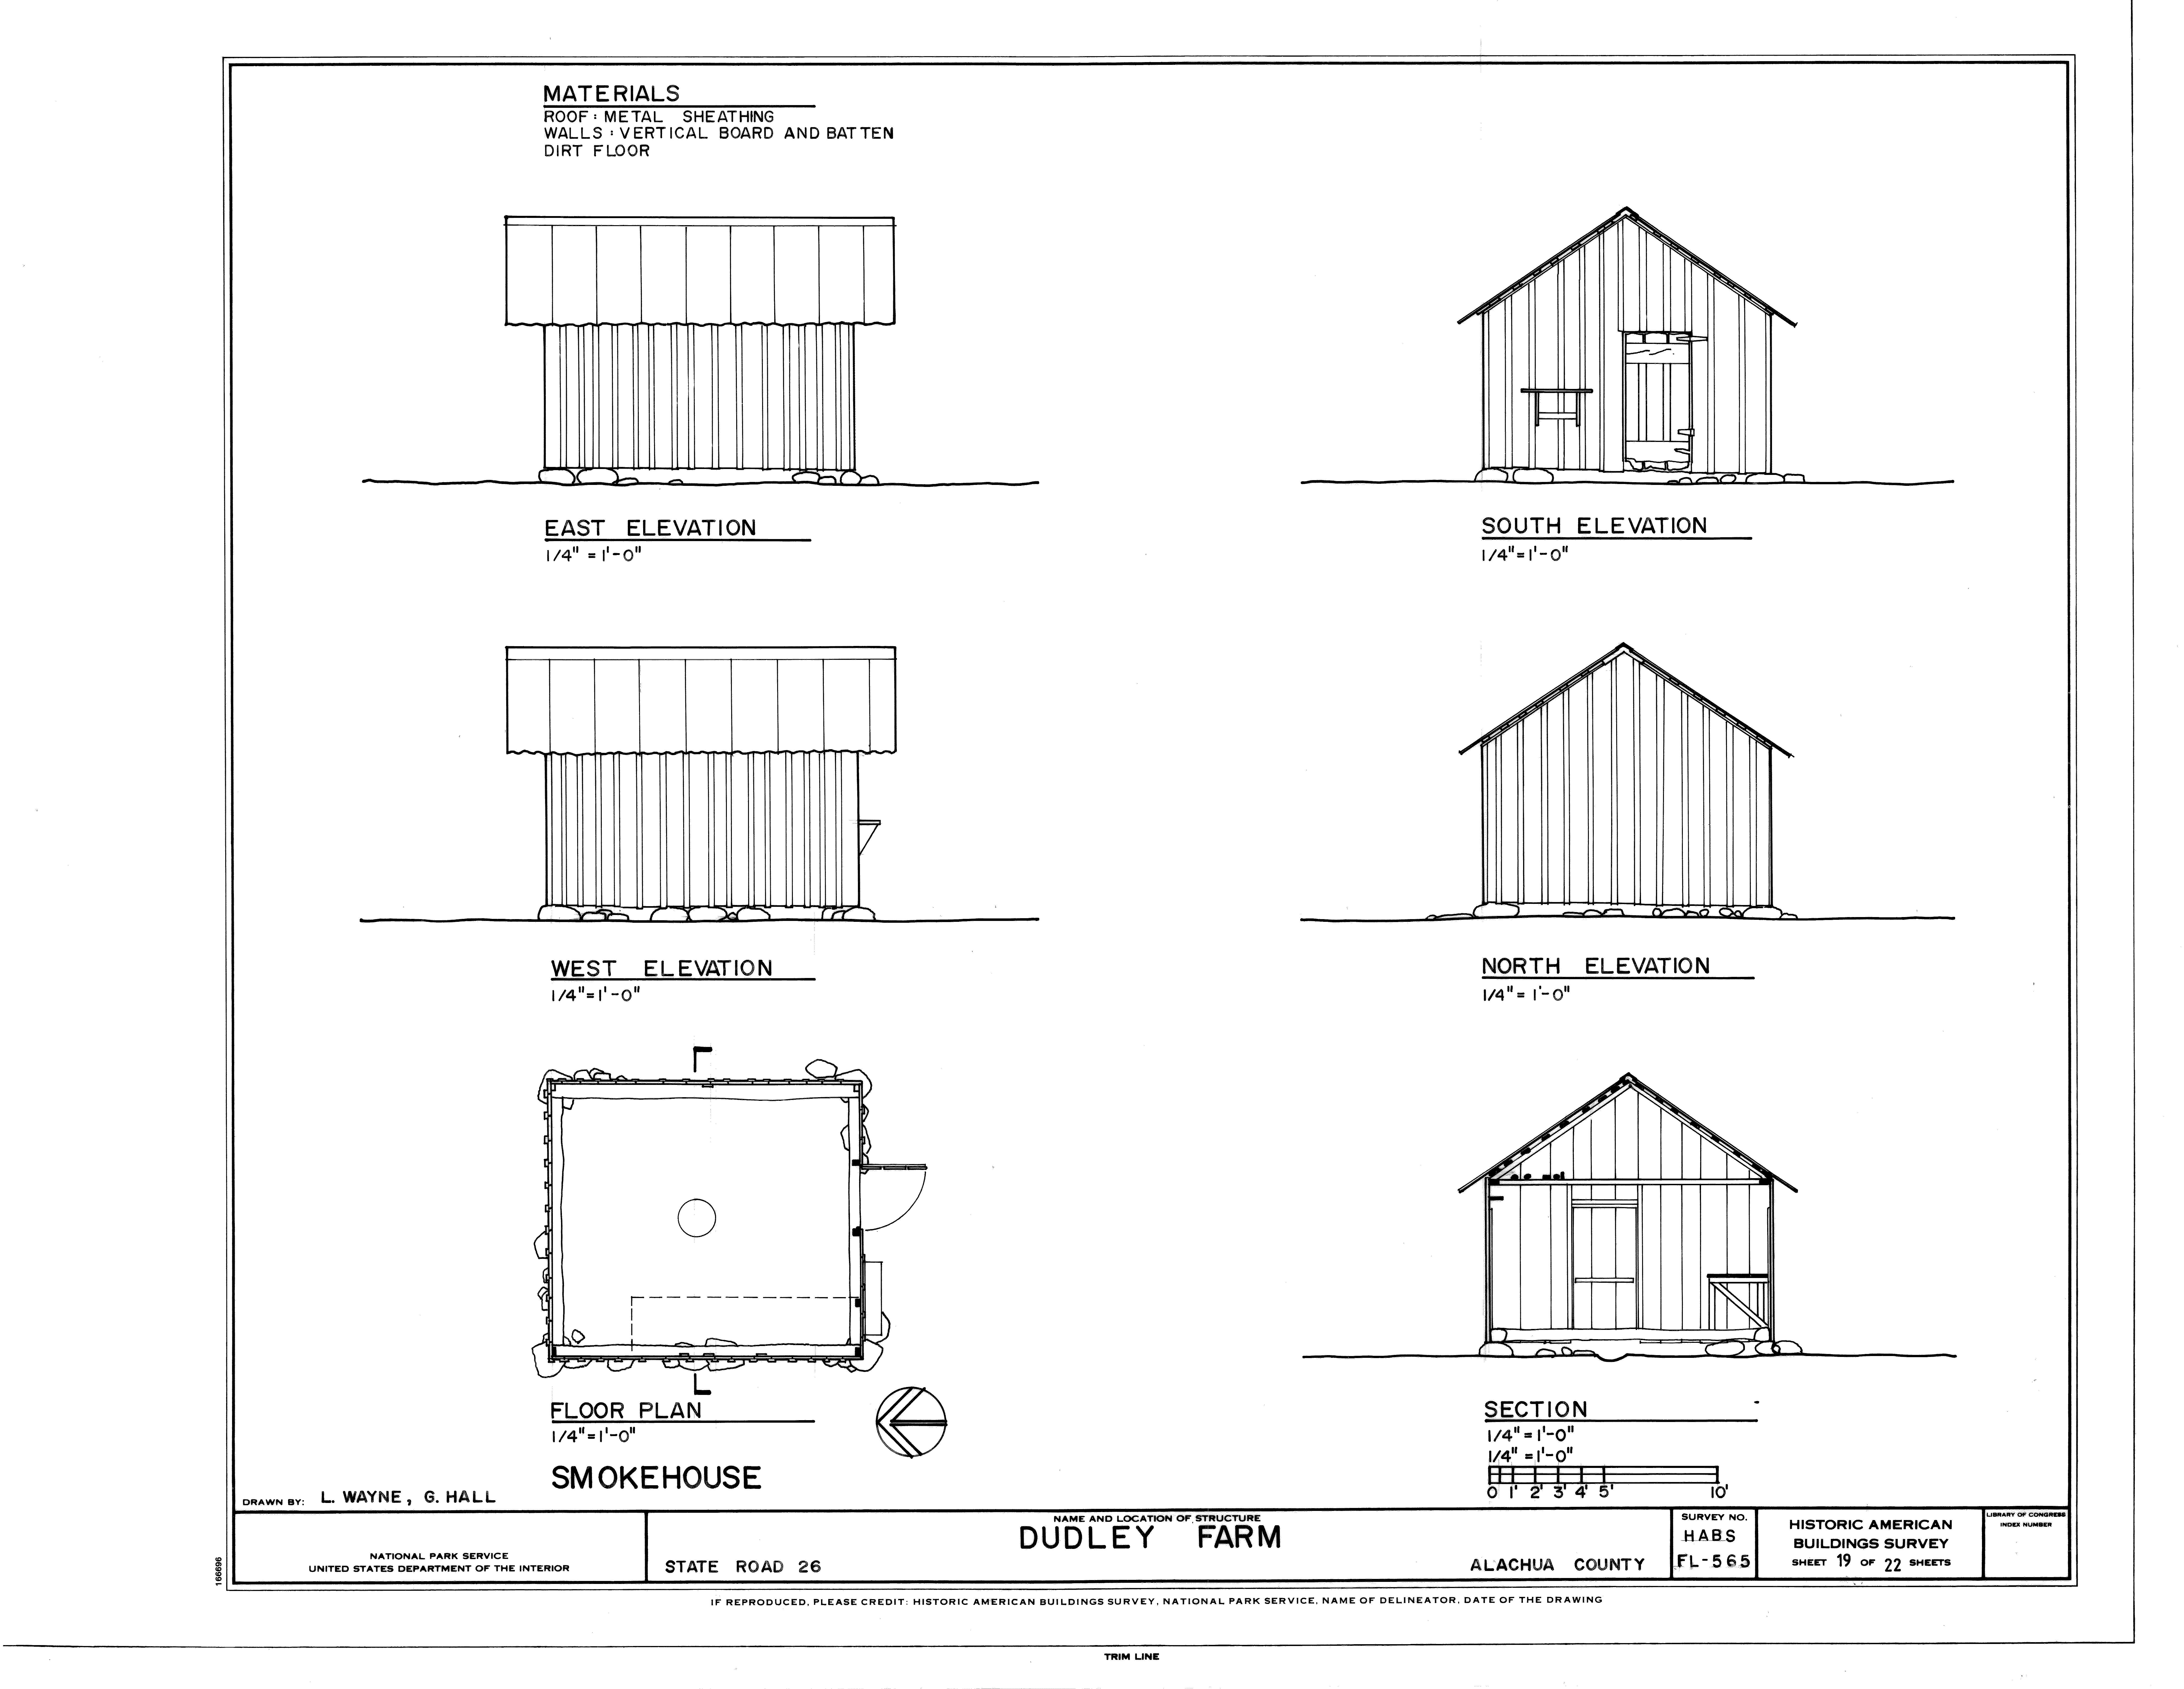 File:smokehouse_ _elevations,_floor_plan_and_section_ _dudley_farm,_farmhouse_and_outbuildings,_18730_west_newberry_road,_newberry,_alachua_county,_fl_habs_fl 565_(sheet_19_of_22) on Small Farm House Plans